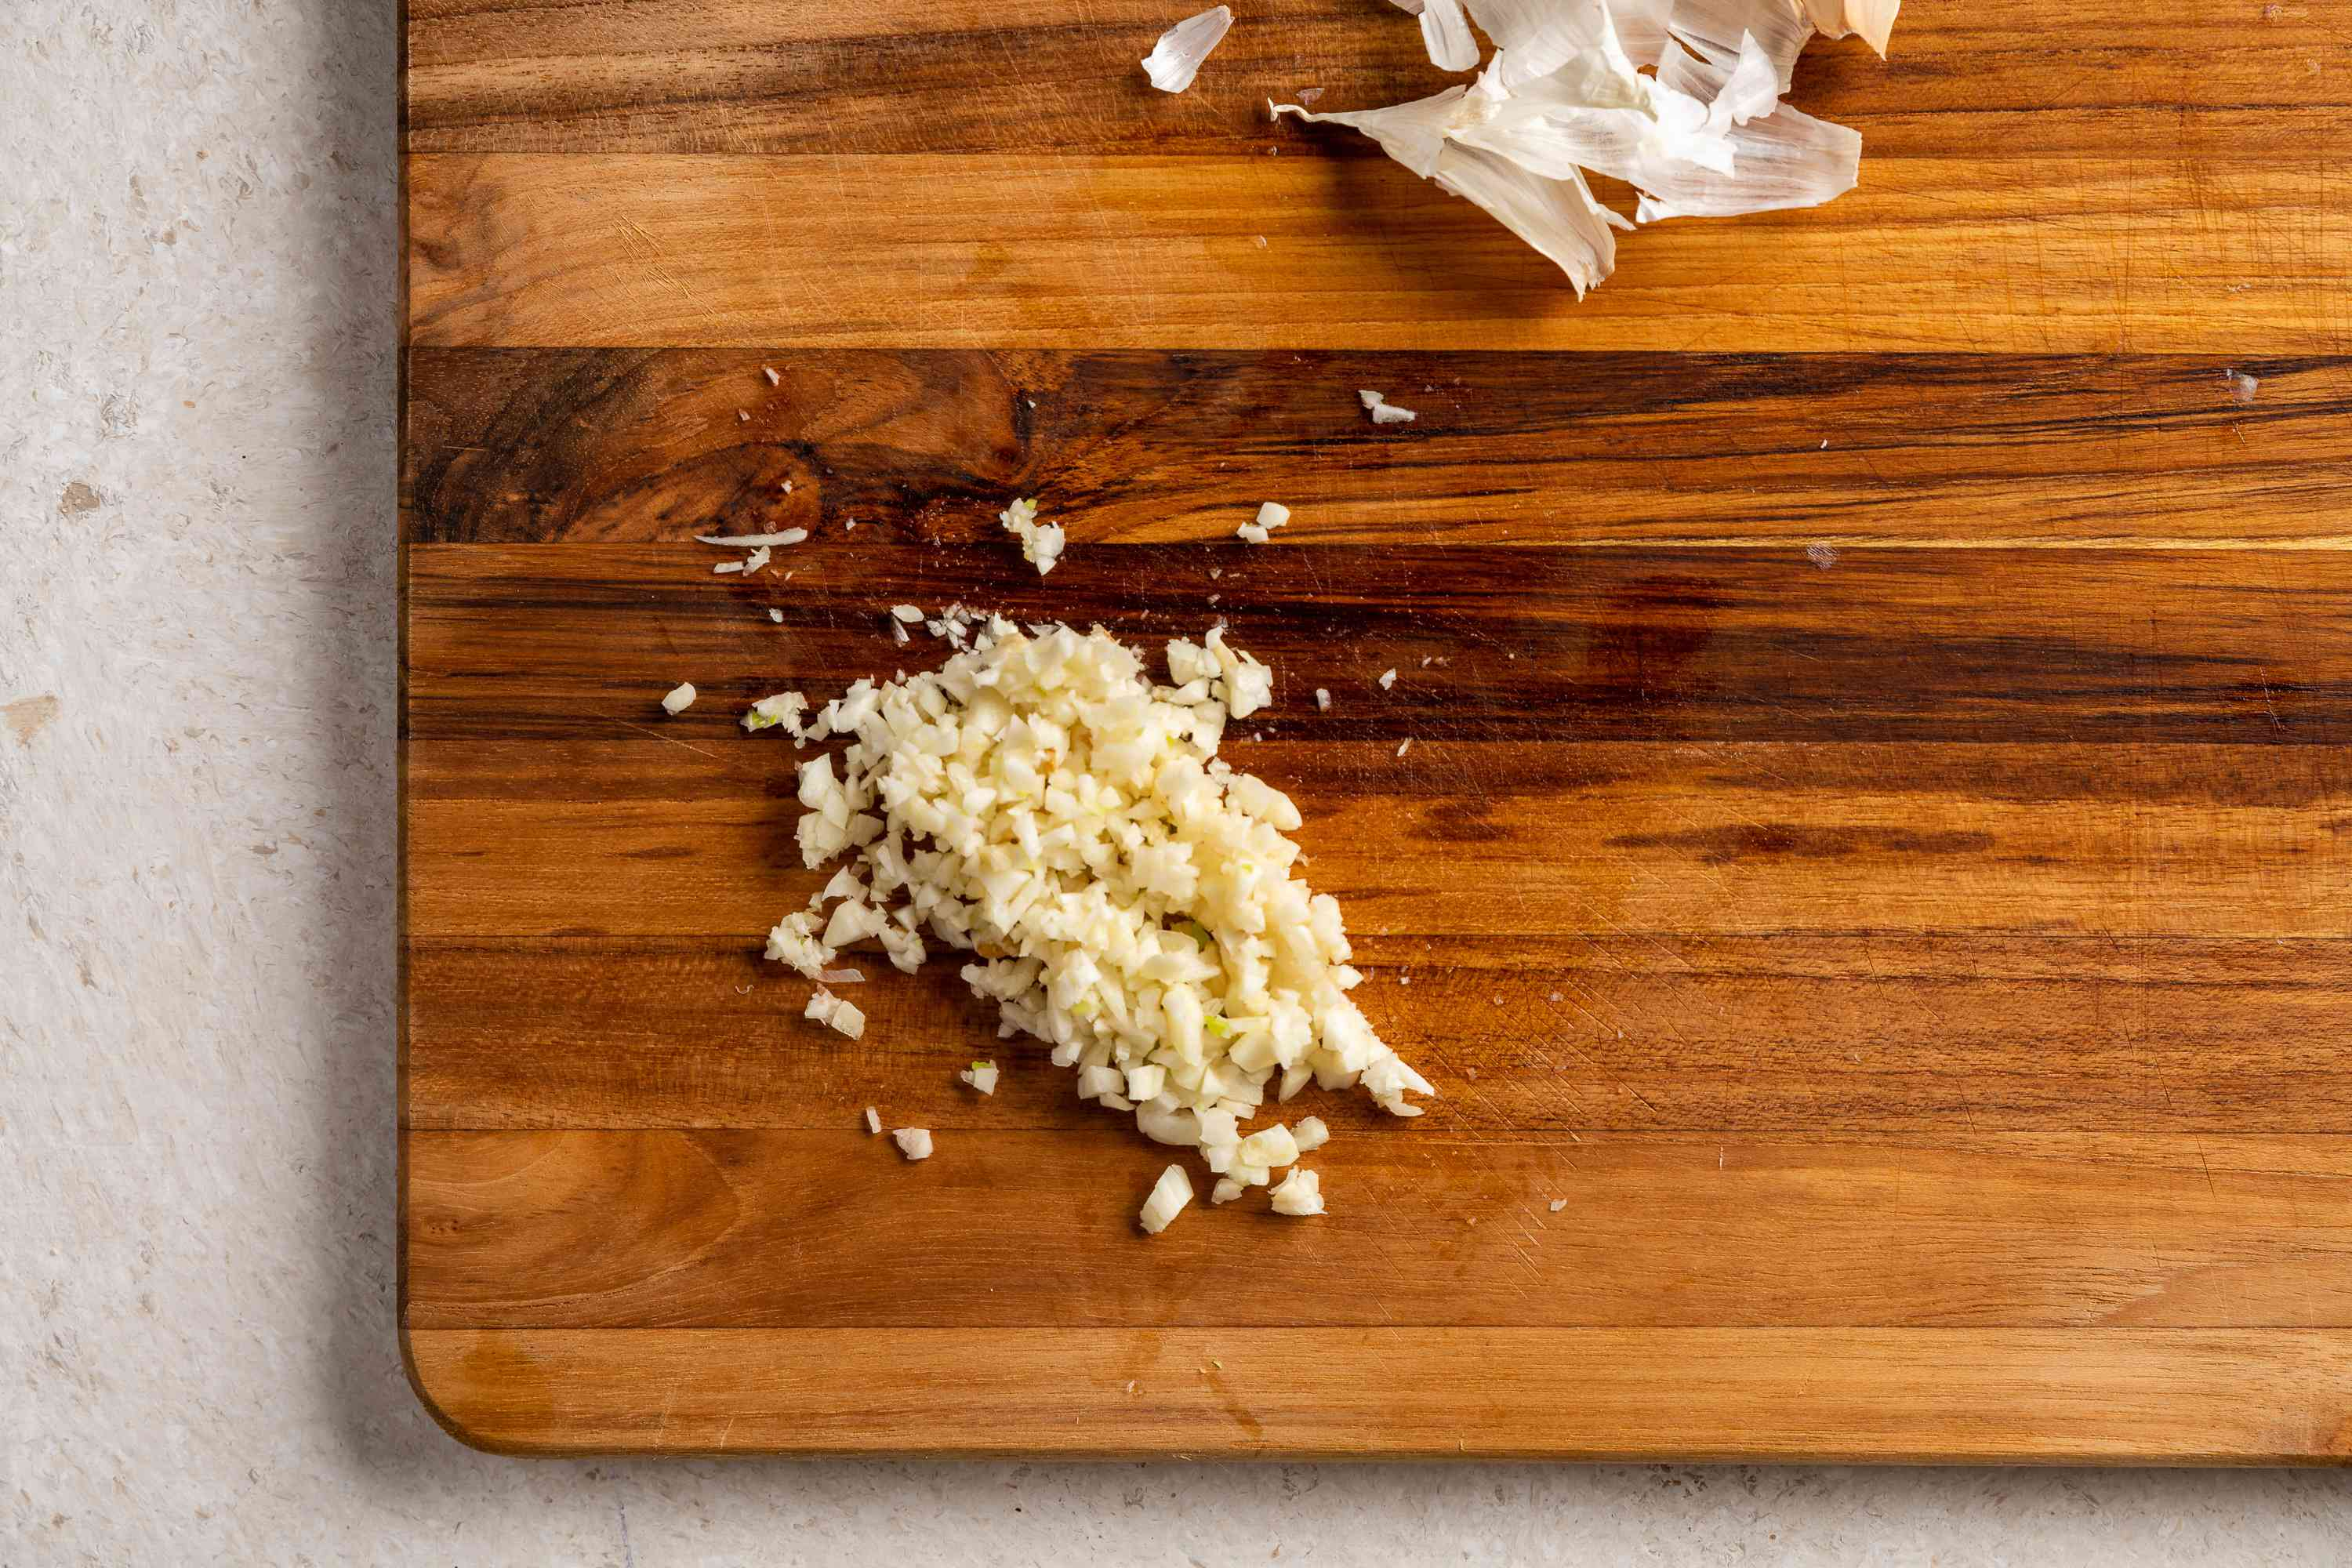 Crush, peel, and finely mince the garlic